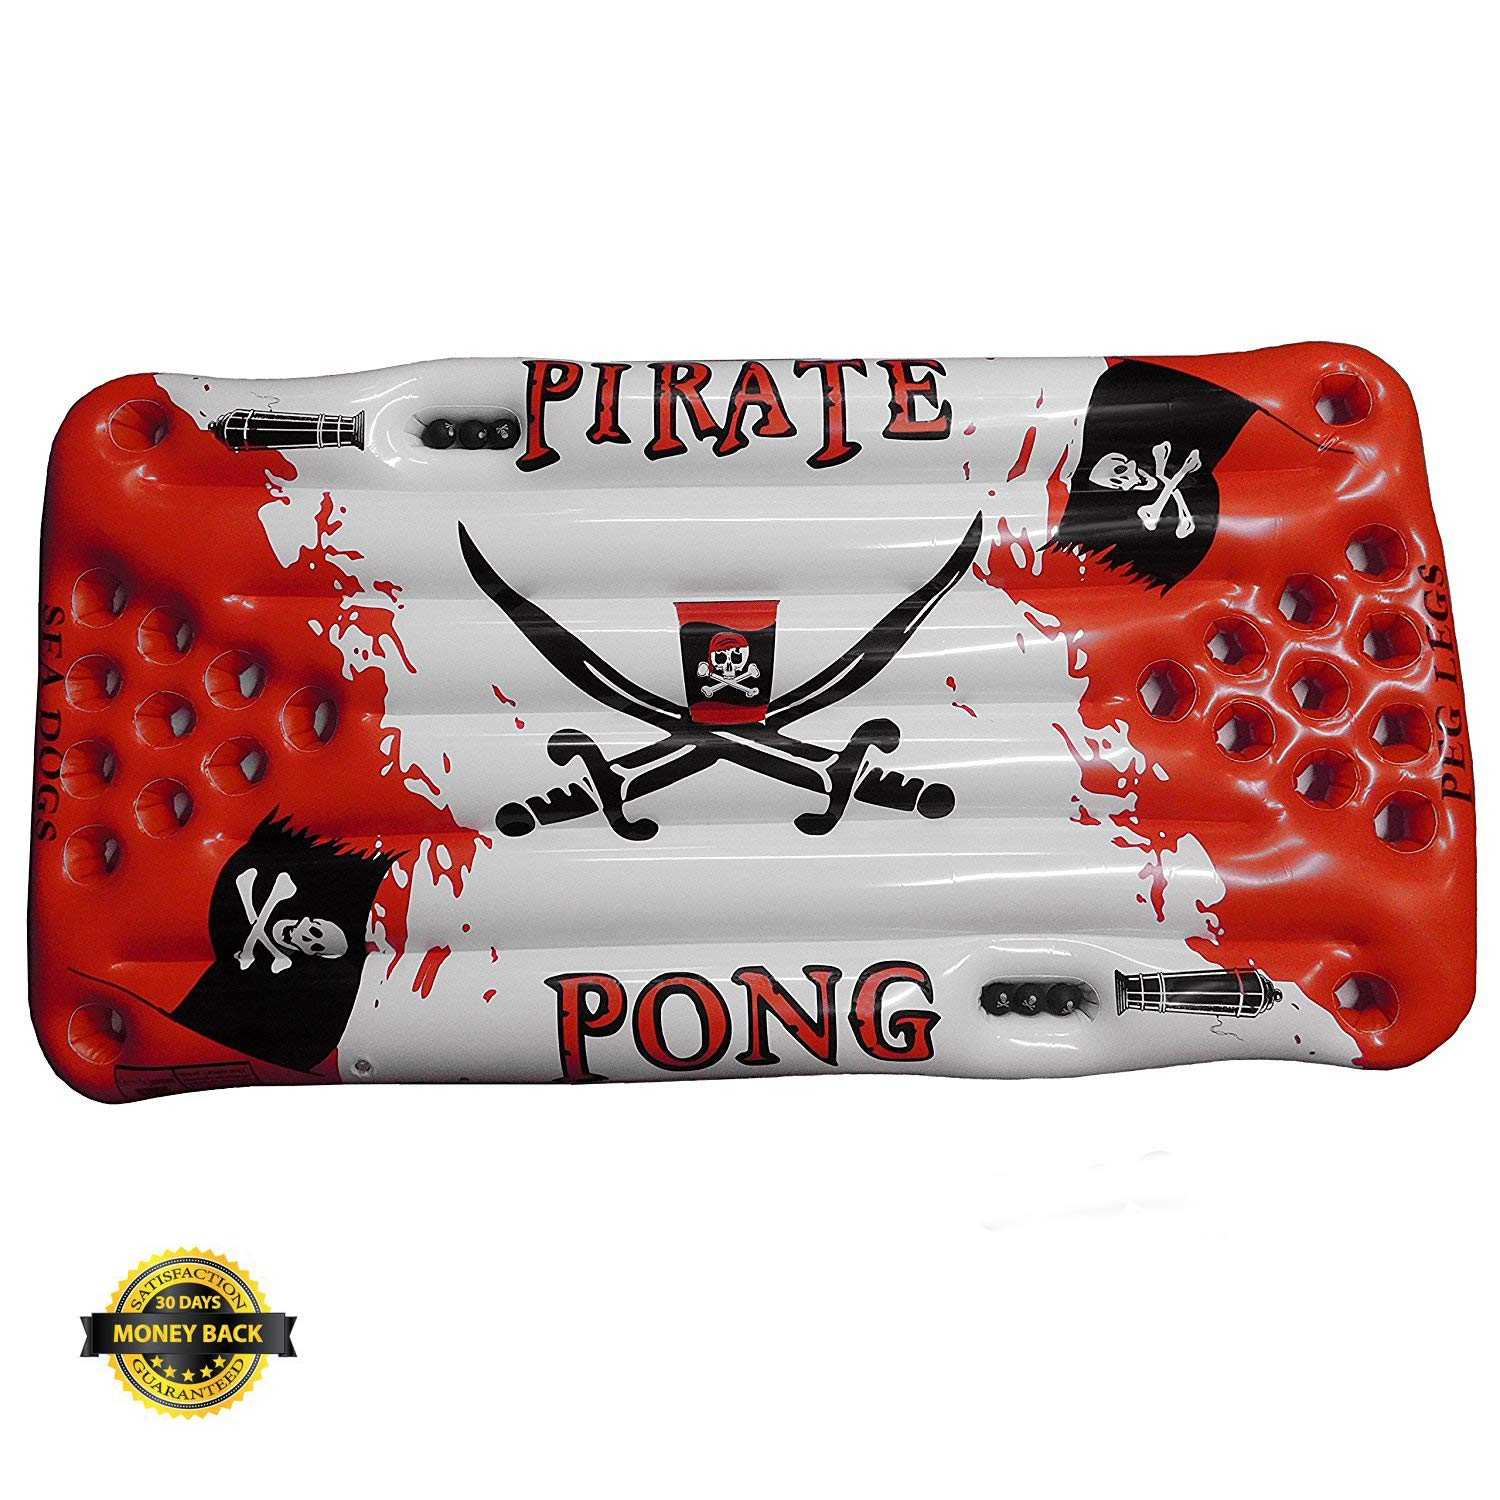 Beer Pong Raft - Inflatable Tabletop Pirate Pong